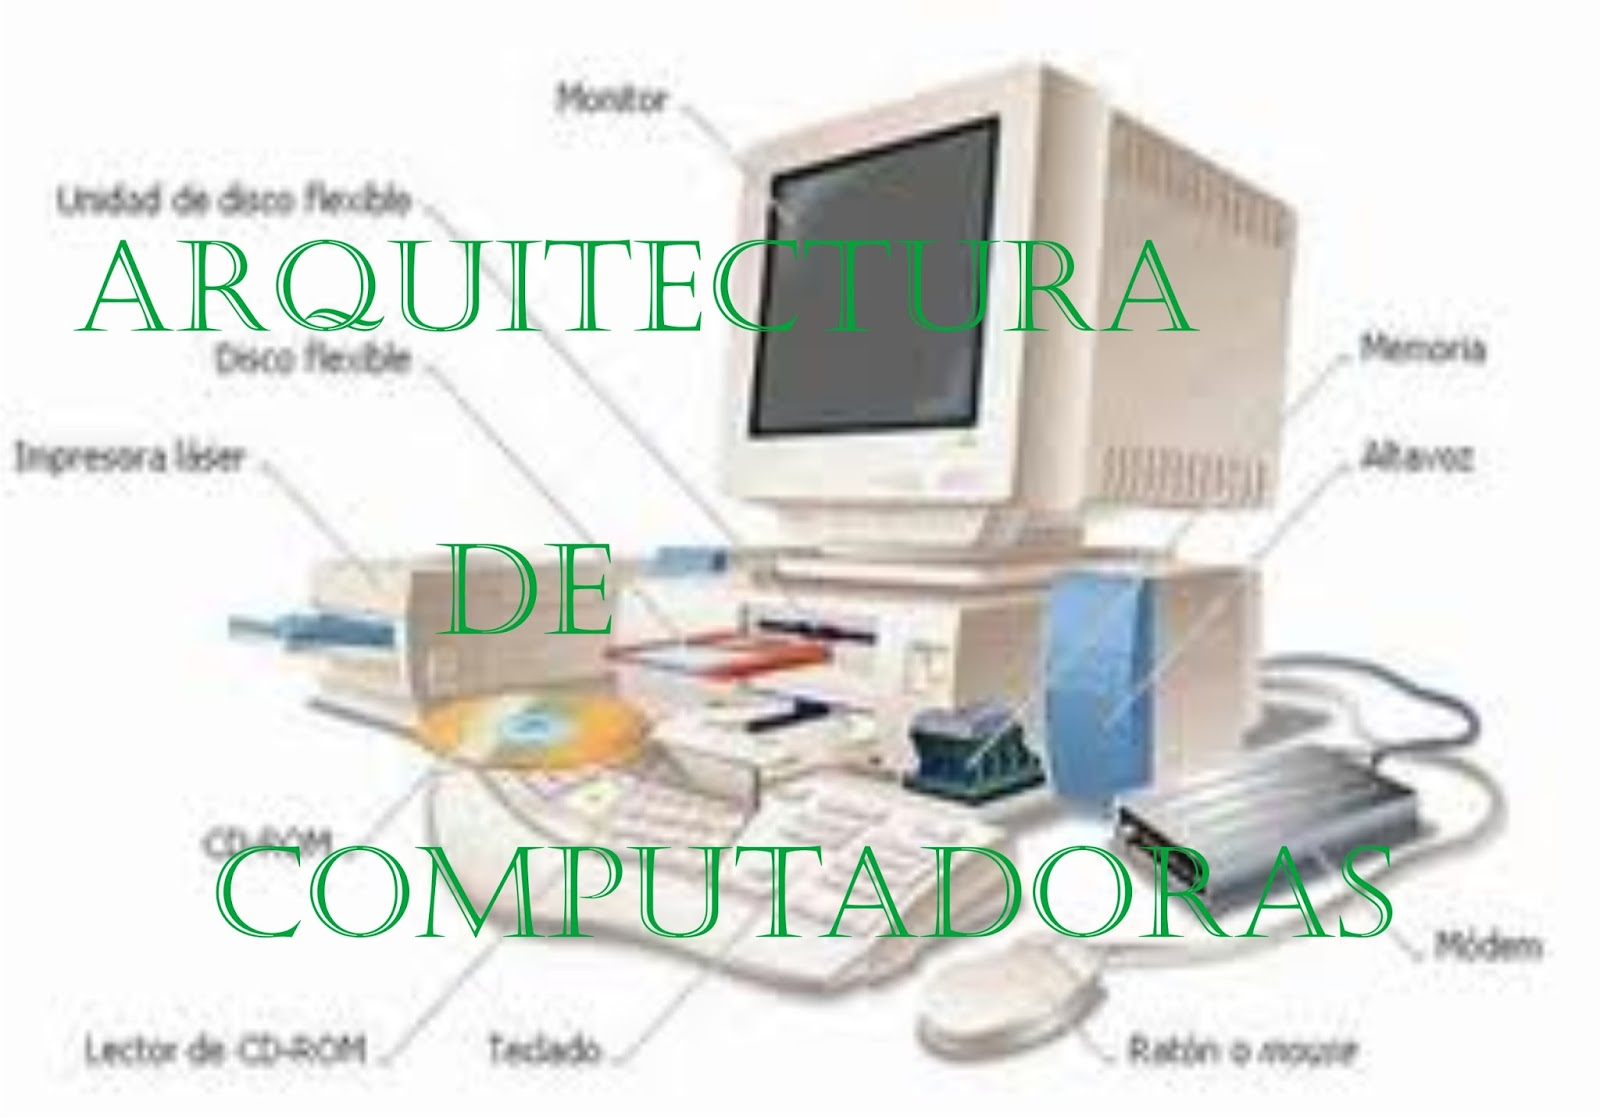 analista programador universitario en unpaz descripci n